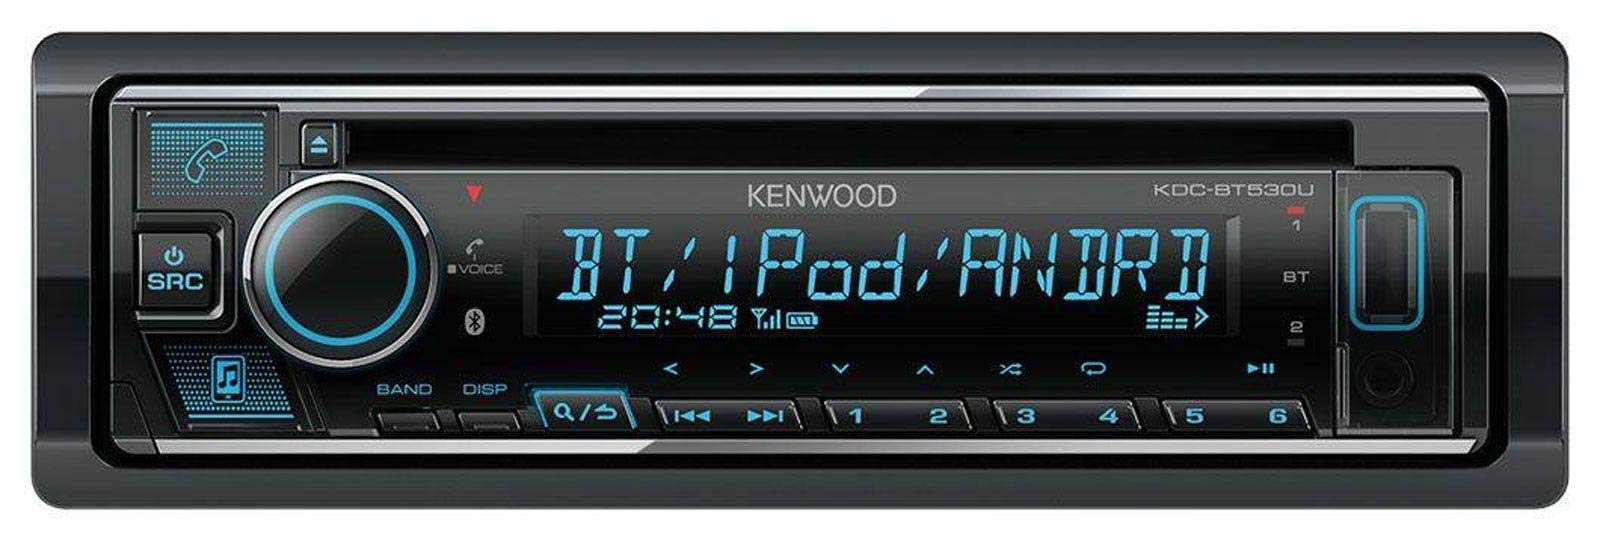 caraudio24-Kenwood-KDC-BT530U-AUX-MP3-Bluetooth-USB-CD-Autoradio-fr-FIAT-500-ab-2007-schwarz